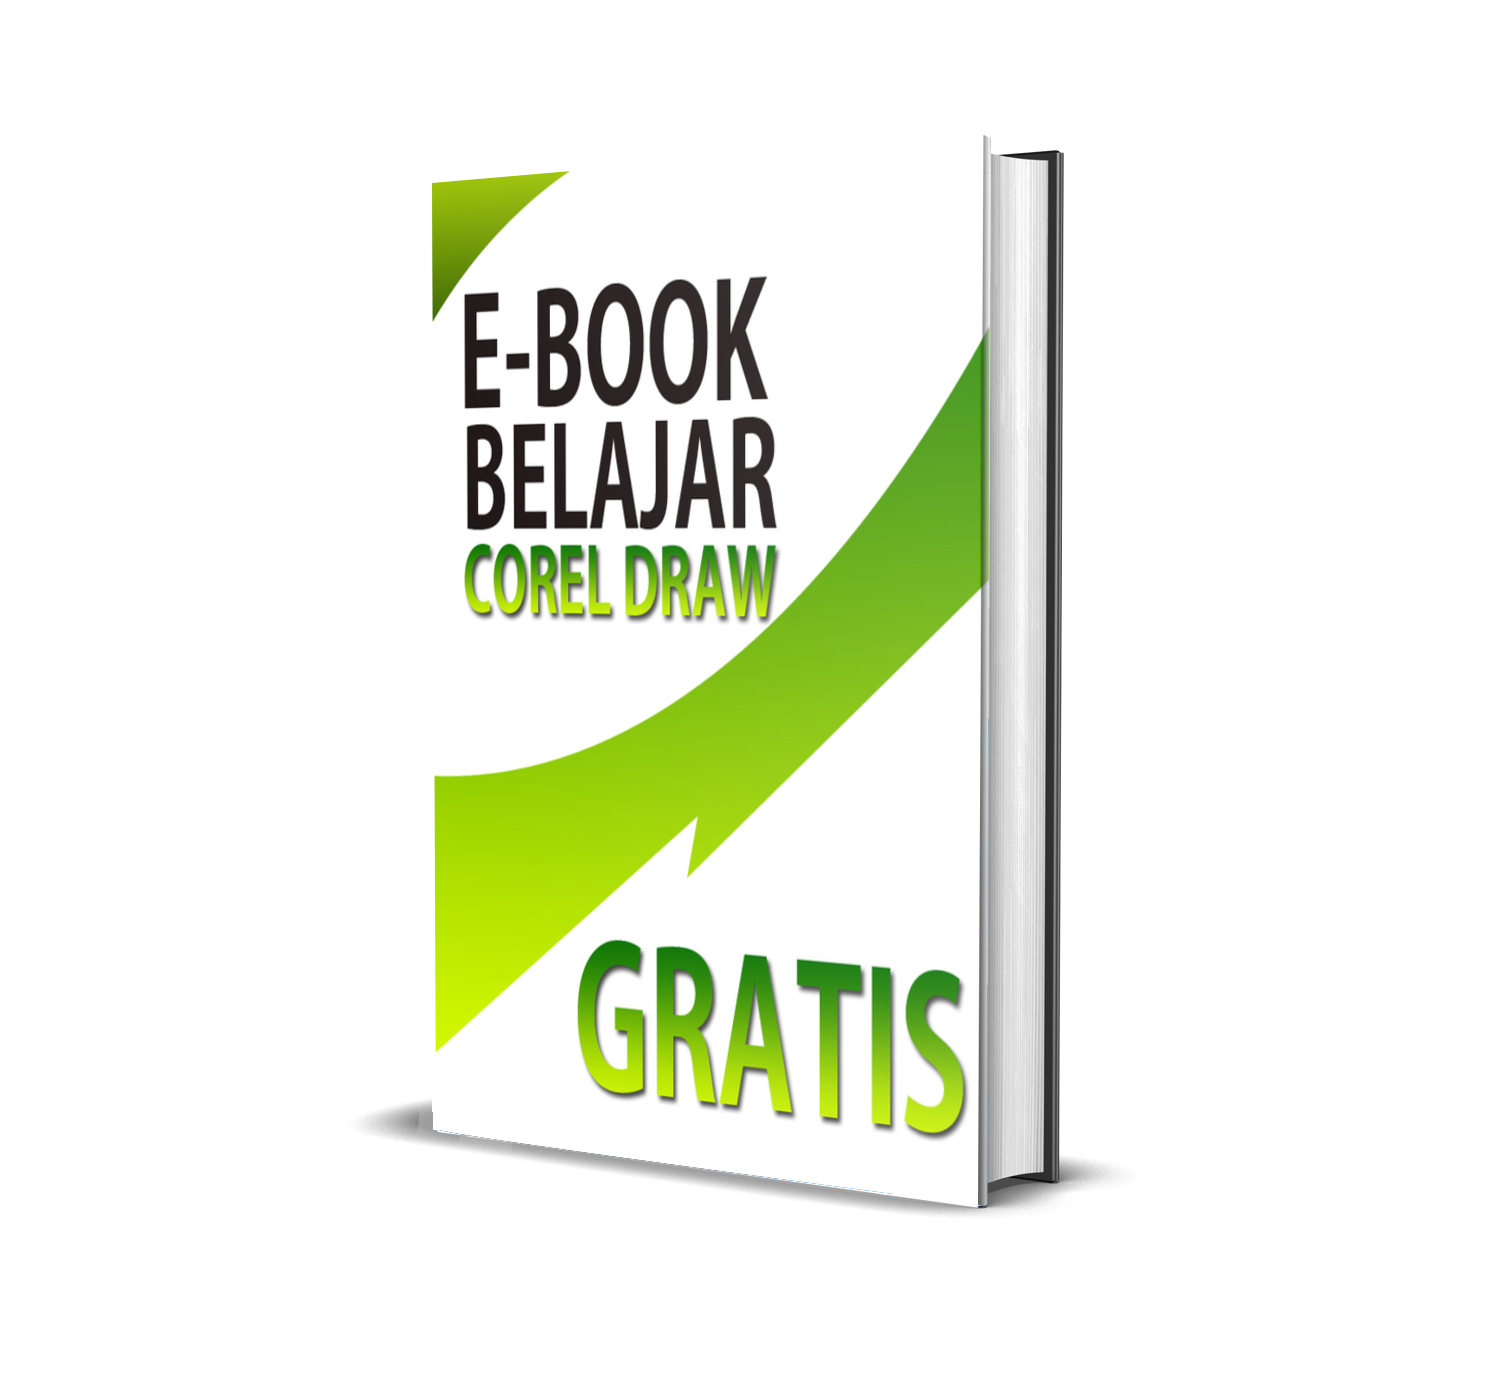 EBook Gratis Belajar Corel Draw